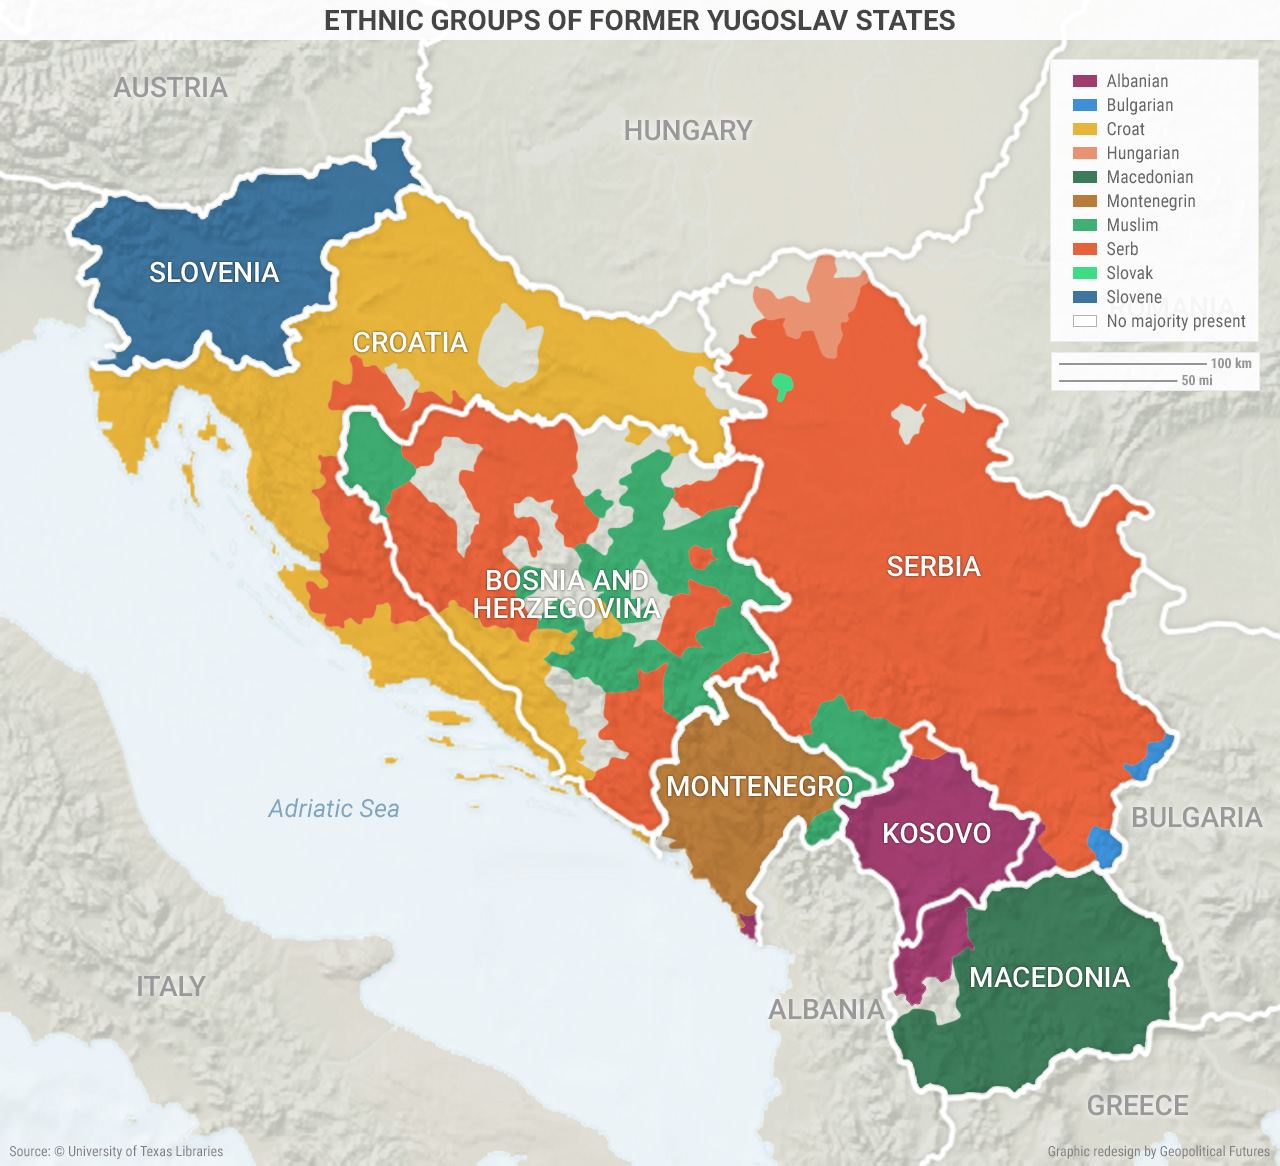 Ethnic Groups of Former Yugoslav States